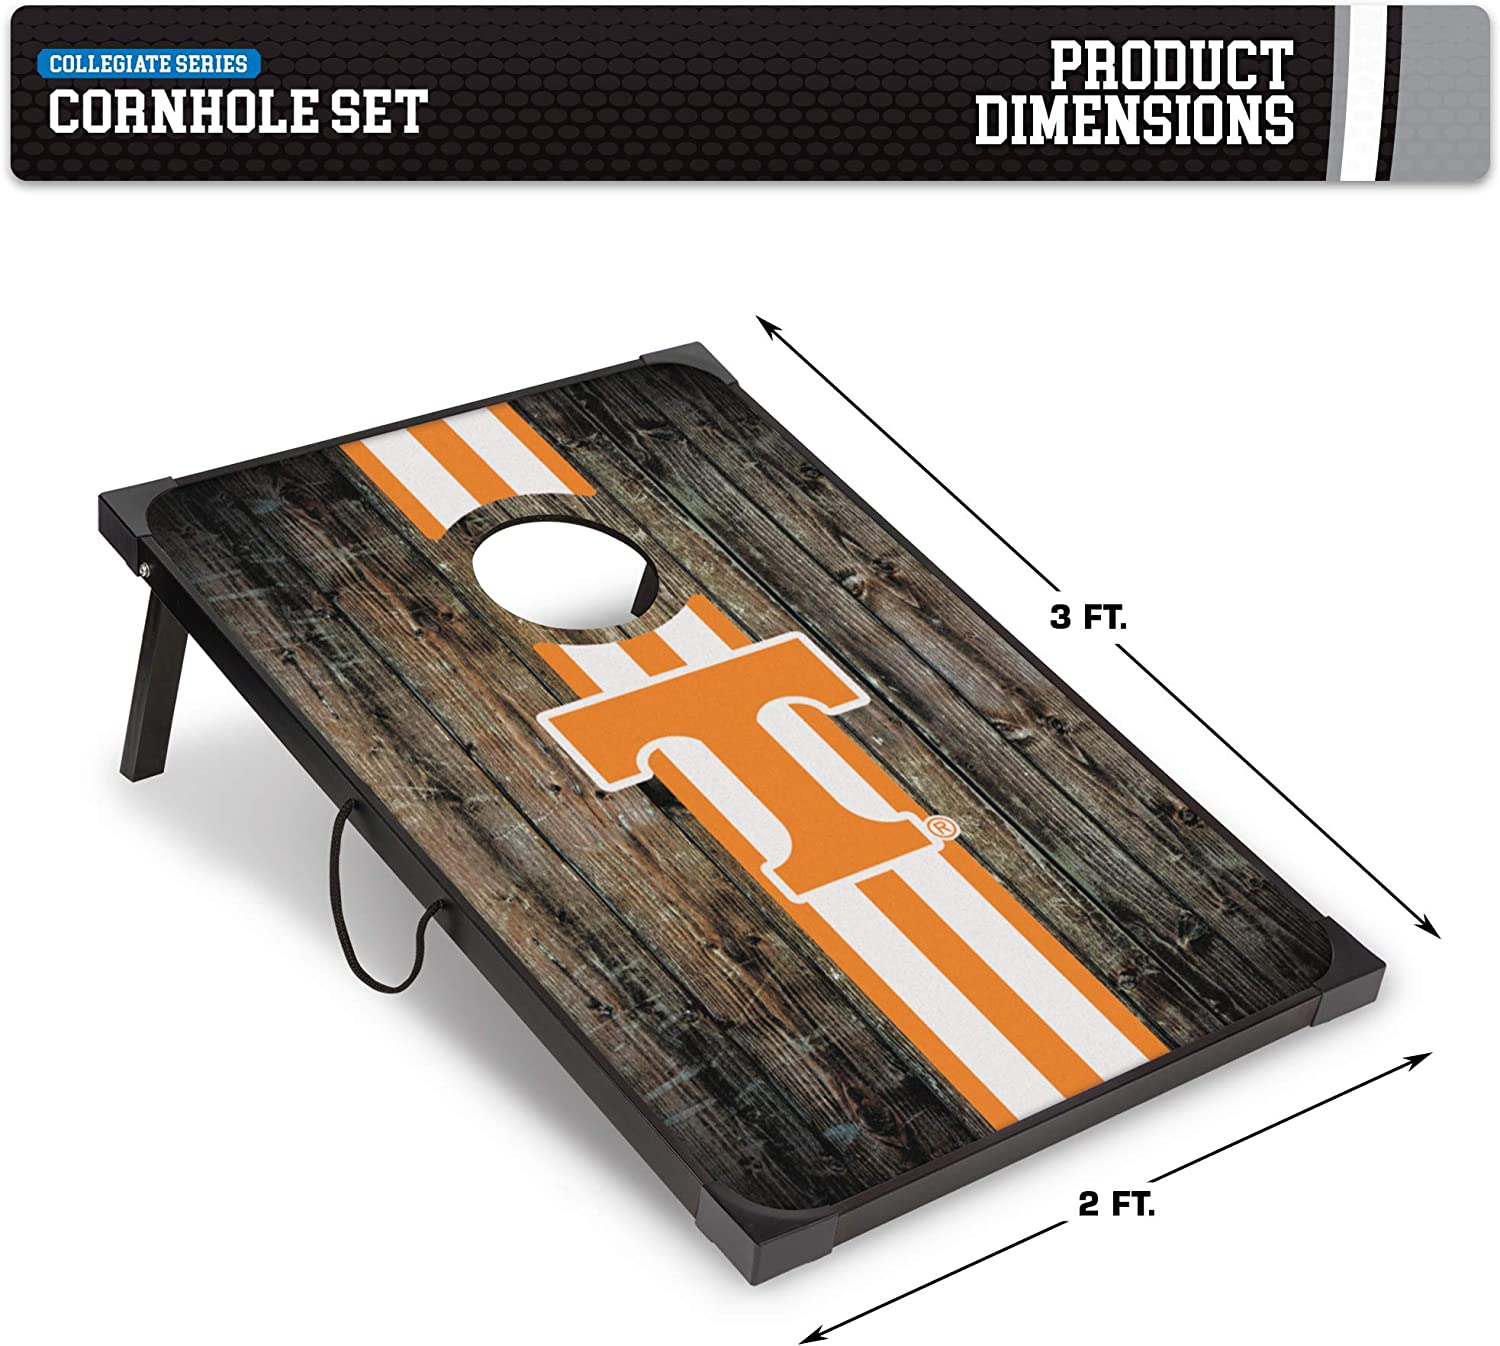 Wild Sports Collegiate Series Tennessee Volunteers Deluxe MDF Cornhole Game Set 2 x 3 9mm Thick with Corners and Aprons Brown Convenient Carry Handles and 8 Premium Bean Bags